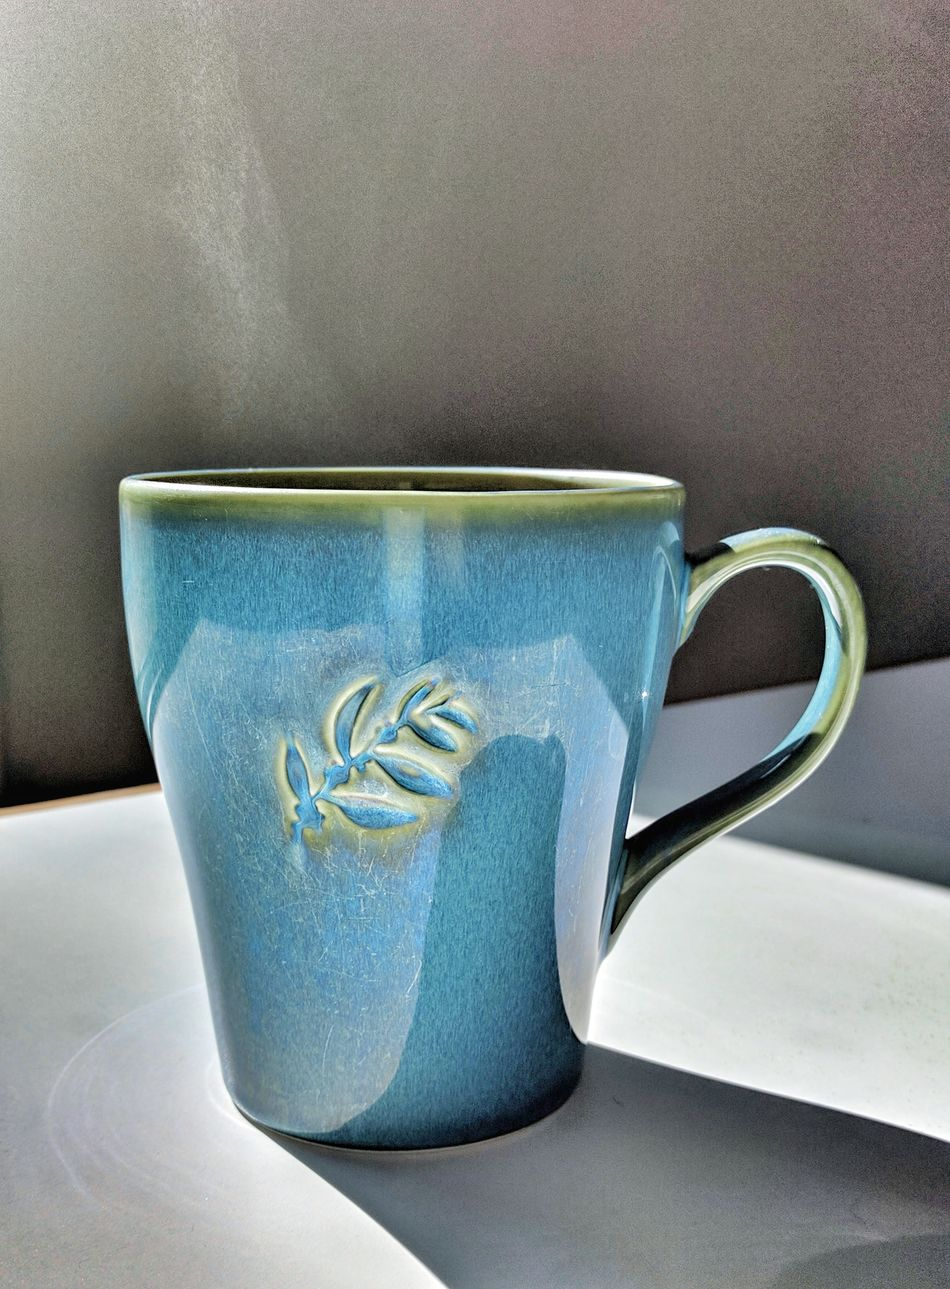 Indoors  Close-up Refreshment Table Drink No People Day Coffee Cup Coffee Morning Coffee Sunlight And Shadow Shapes And Angles Morning Light Blue Steam Mug Design EyeEmNewHere Warmth Warm Drink Circles Pattern Sunlight Shades Of Blue Shadows Caffine Art Is Everywhere